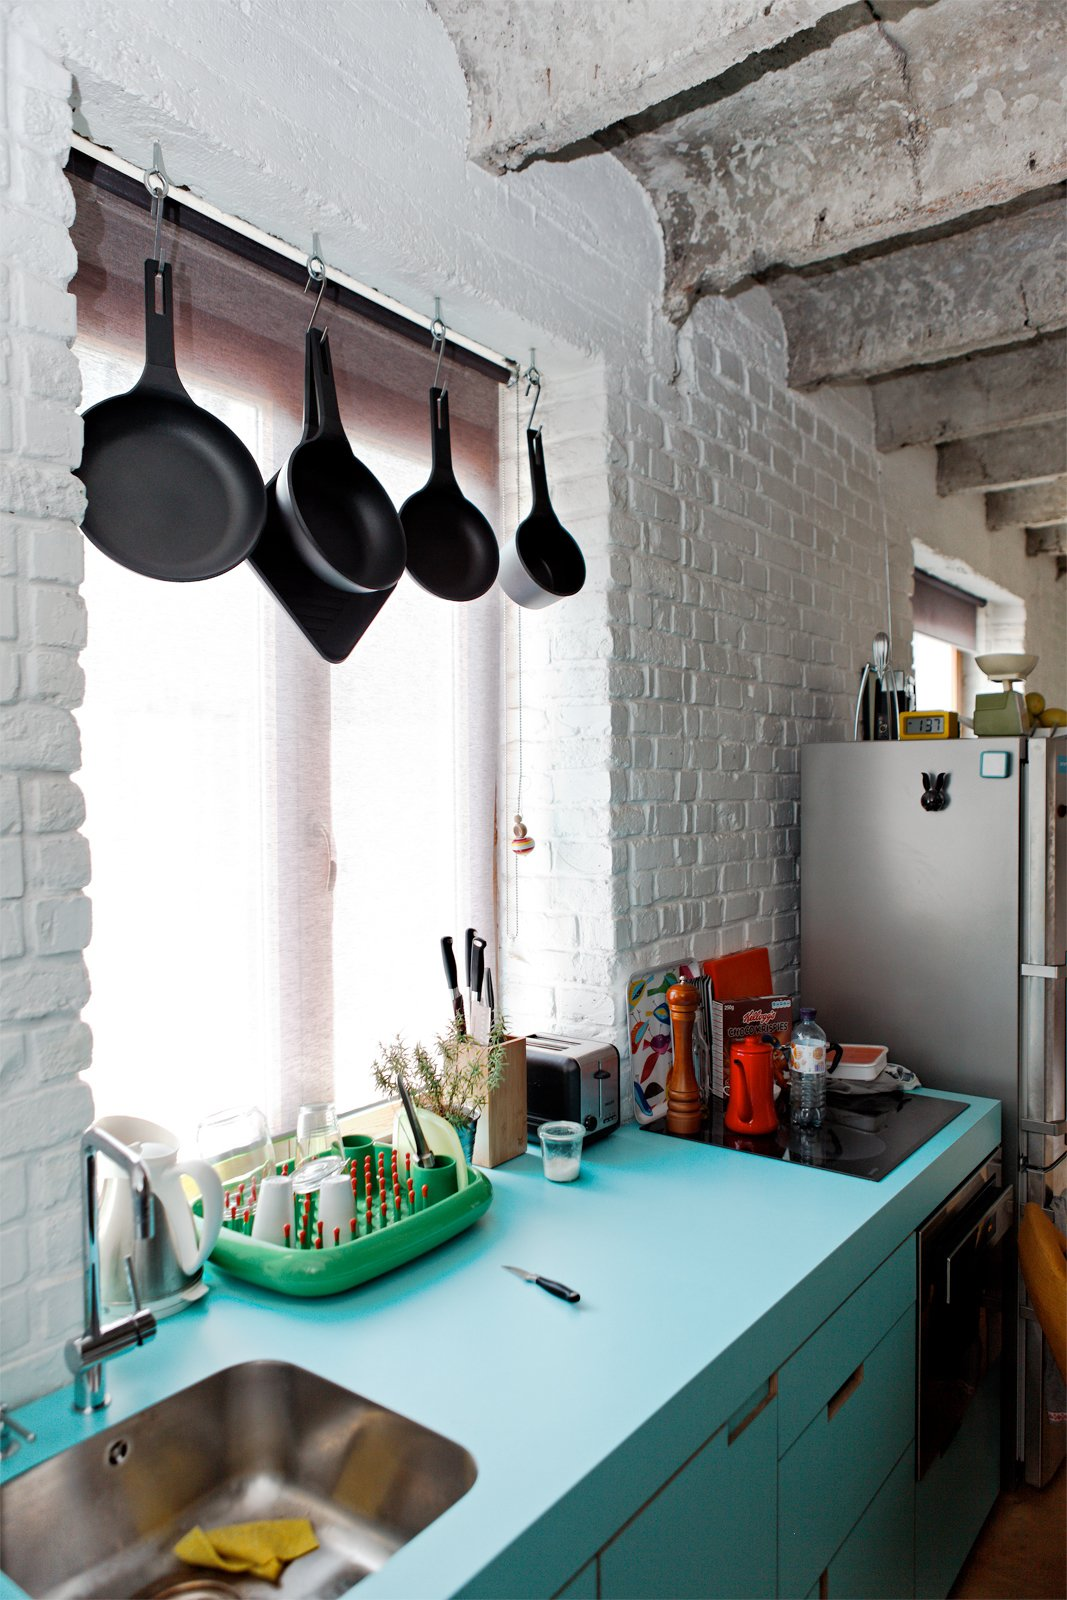 """A green Dish Doctor by Marc Newson for Magis adds just a bit more color to the blue facing of the kitchen sink and cabinets.  Search """"7 small spaces incredible kitchens"""" from A Little Apartment Gets a Solid Renovation"""